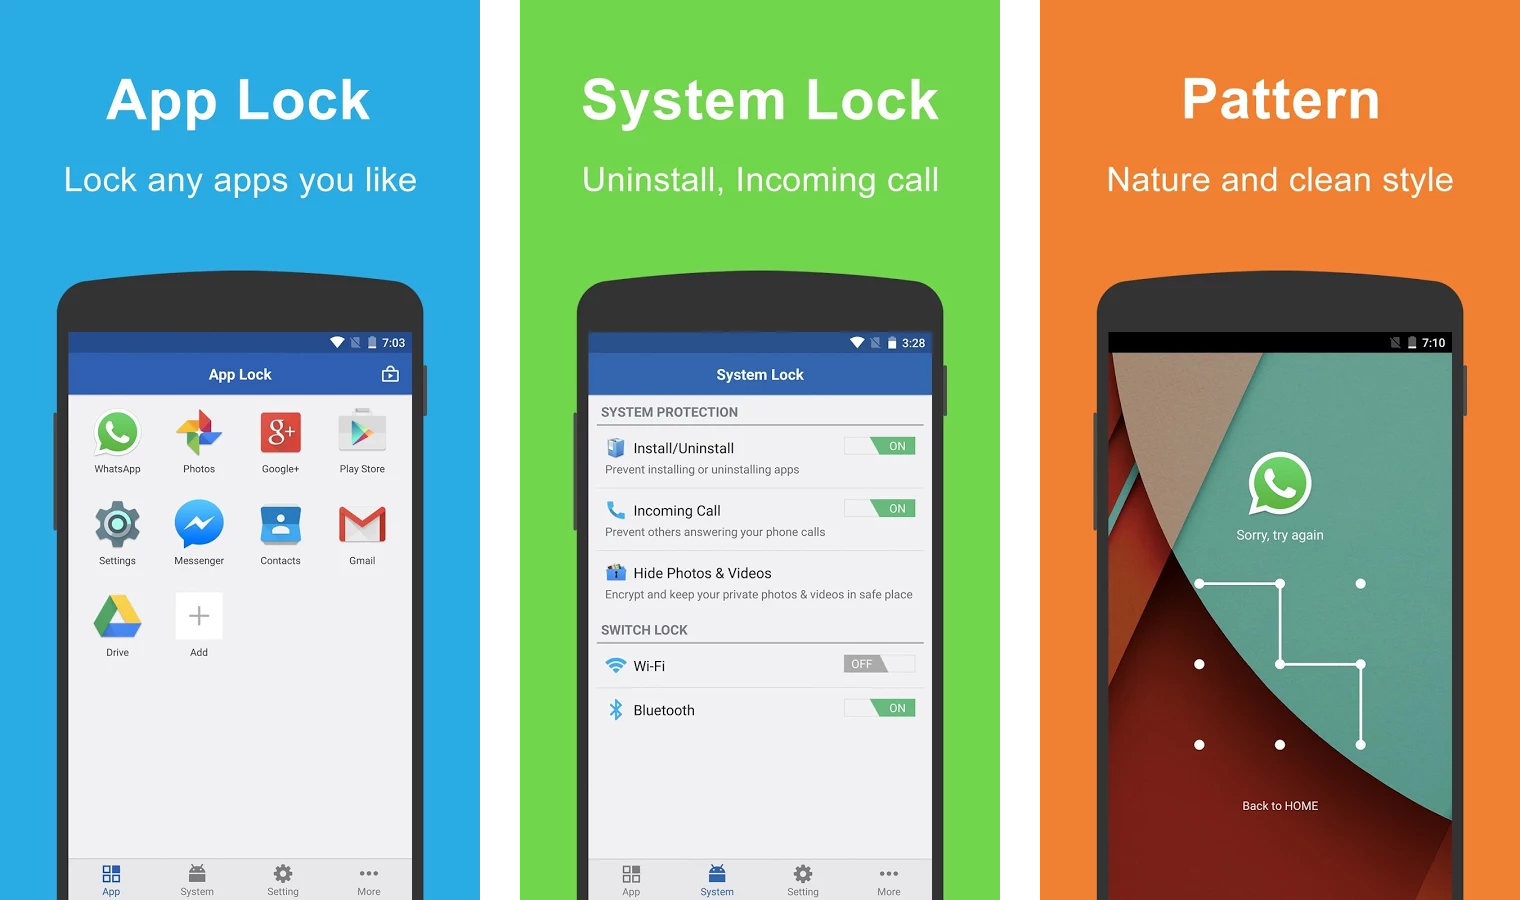 Camera How To Hide Pictures On Android Phone how to hide apps on android phandroid applock 2 is a simple and clean app that allow you put pattern lock pin or password top of any your phone it has powerful tools such